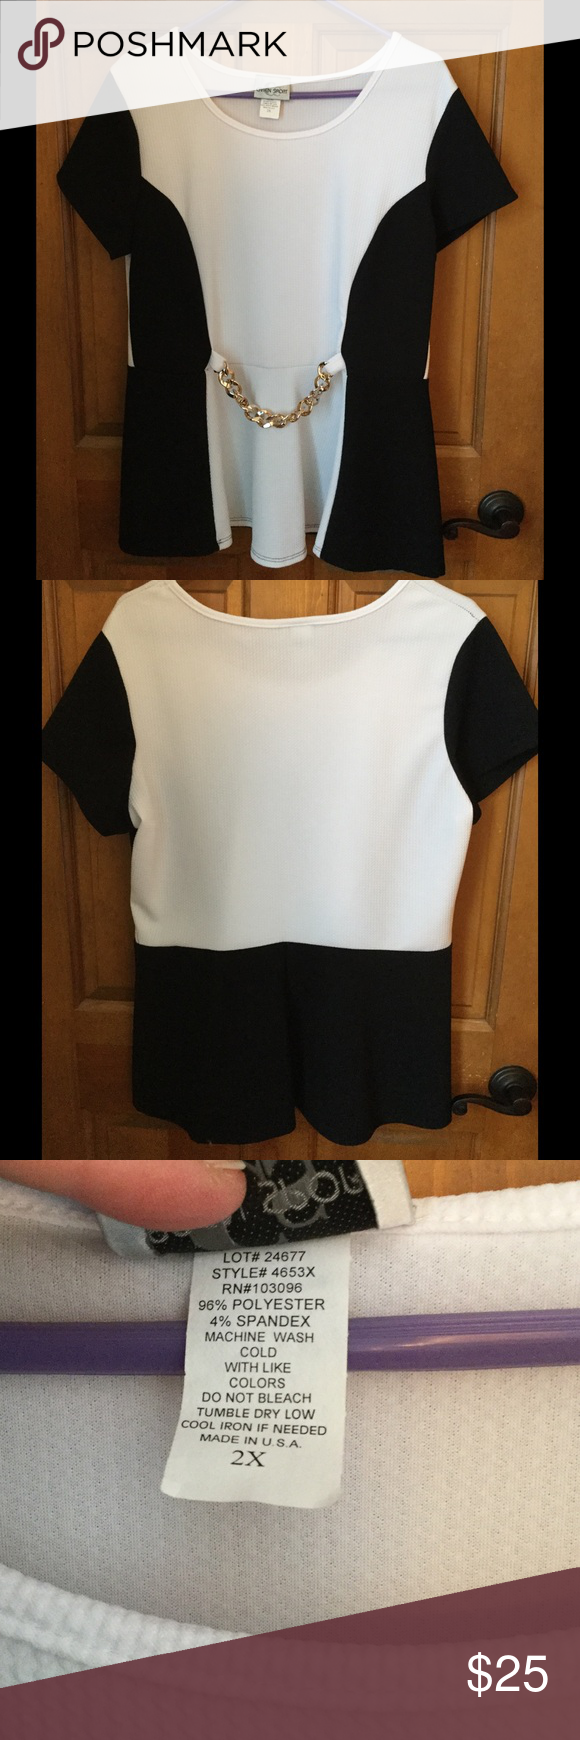 2X Black and white top, never worn. Never worn black and white top with attached gold colored belt. It would be roomier for a 1X. Polyester and spandex Tops Tees - Short Sleeve